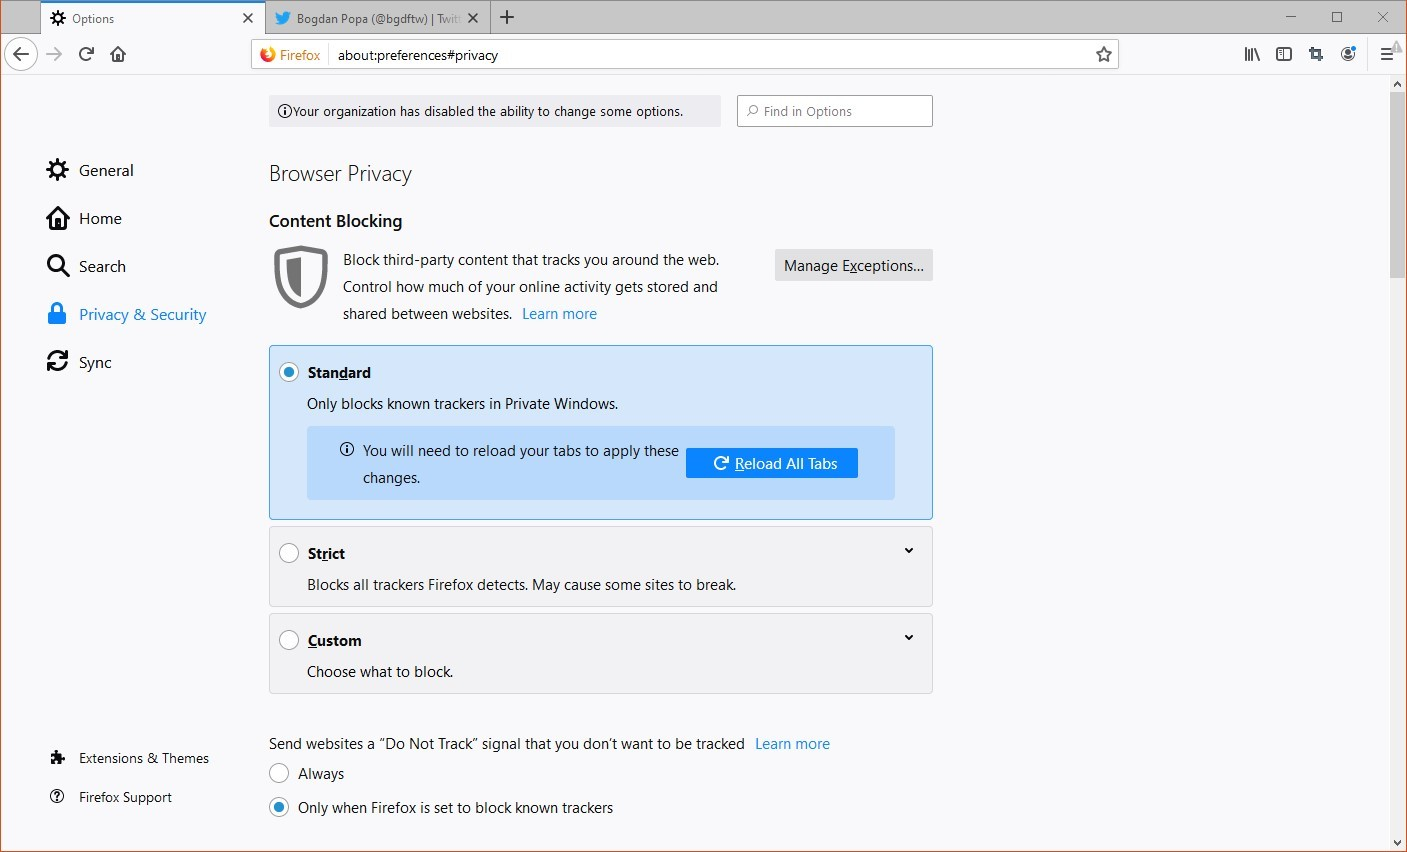 Tracking protection levels in Firefox